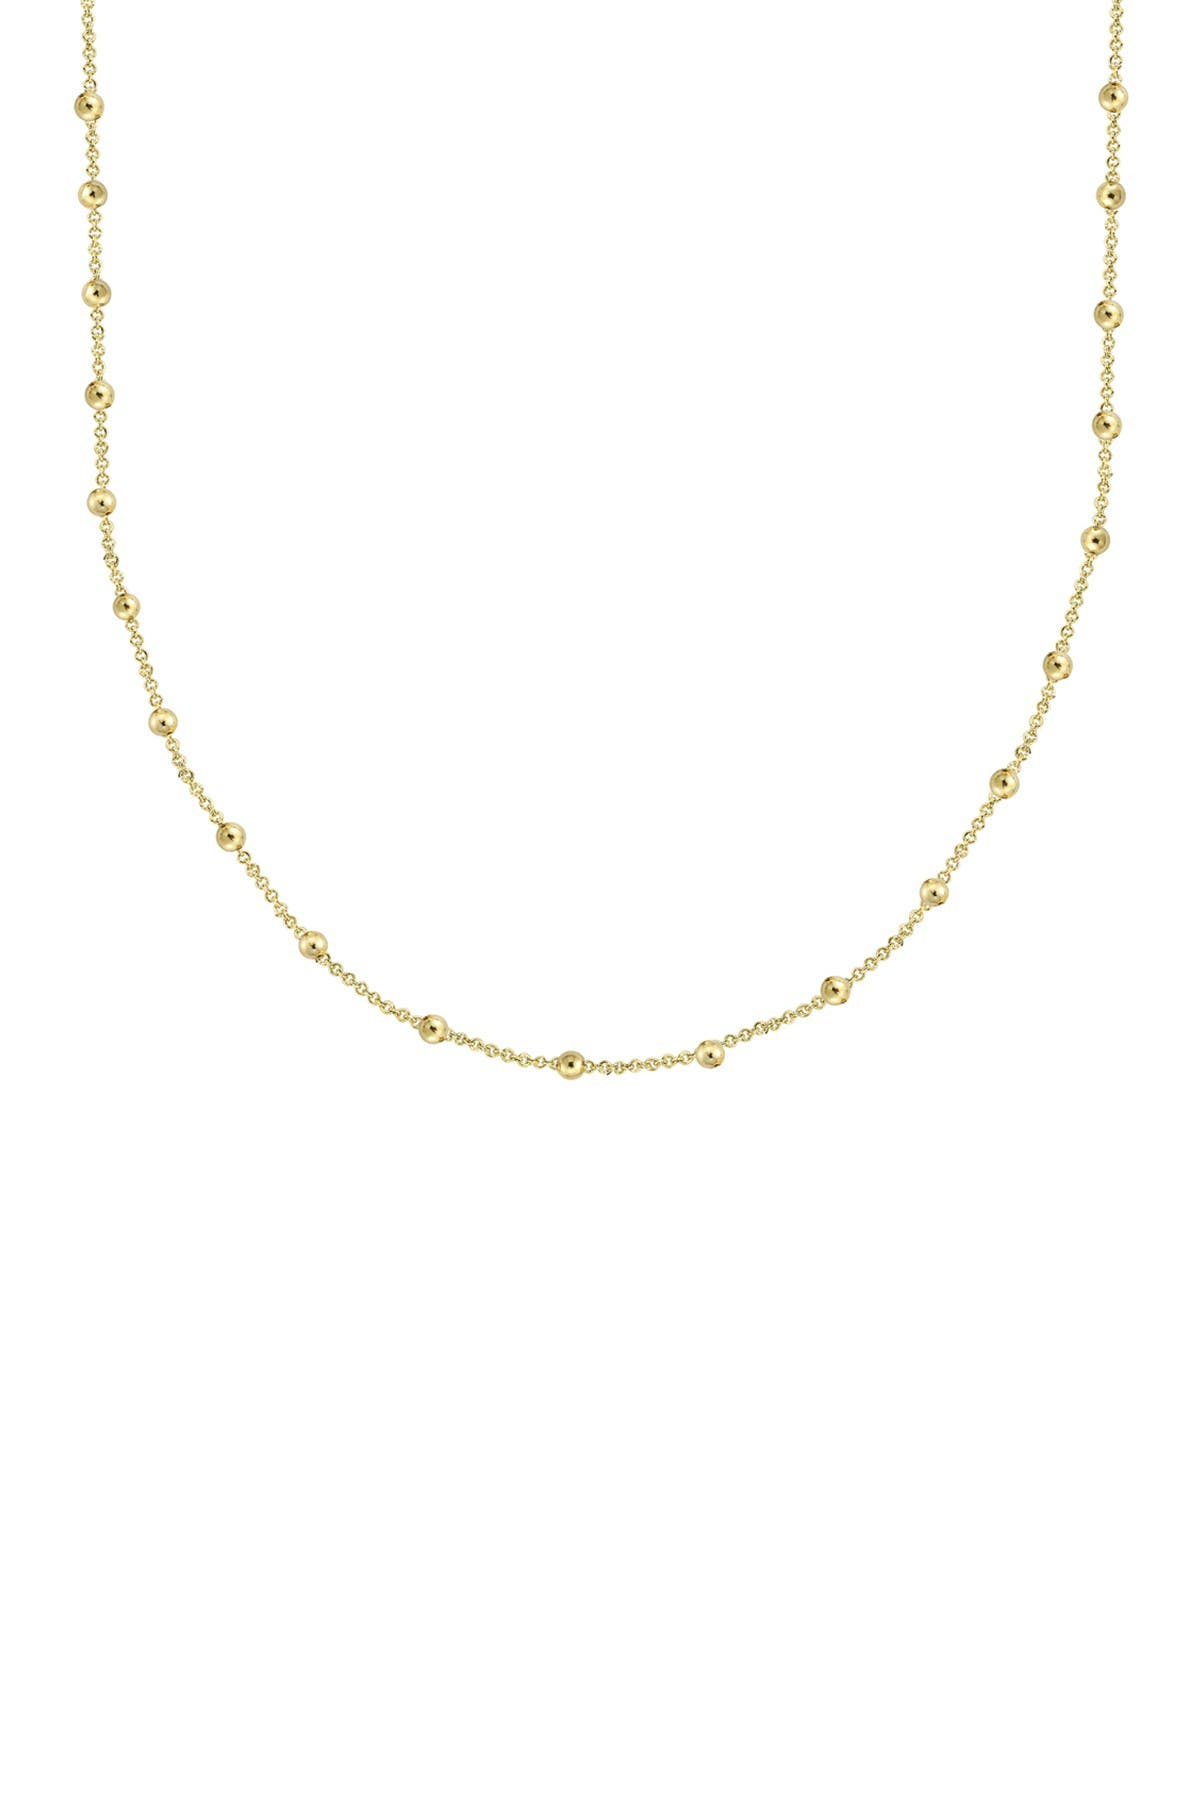 Image of Savvy Cie 14K Yellow Gold Plated Sterling Silver Italian Rosary Bead Necklace